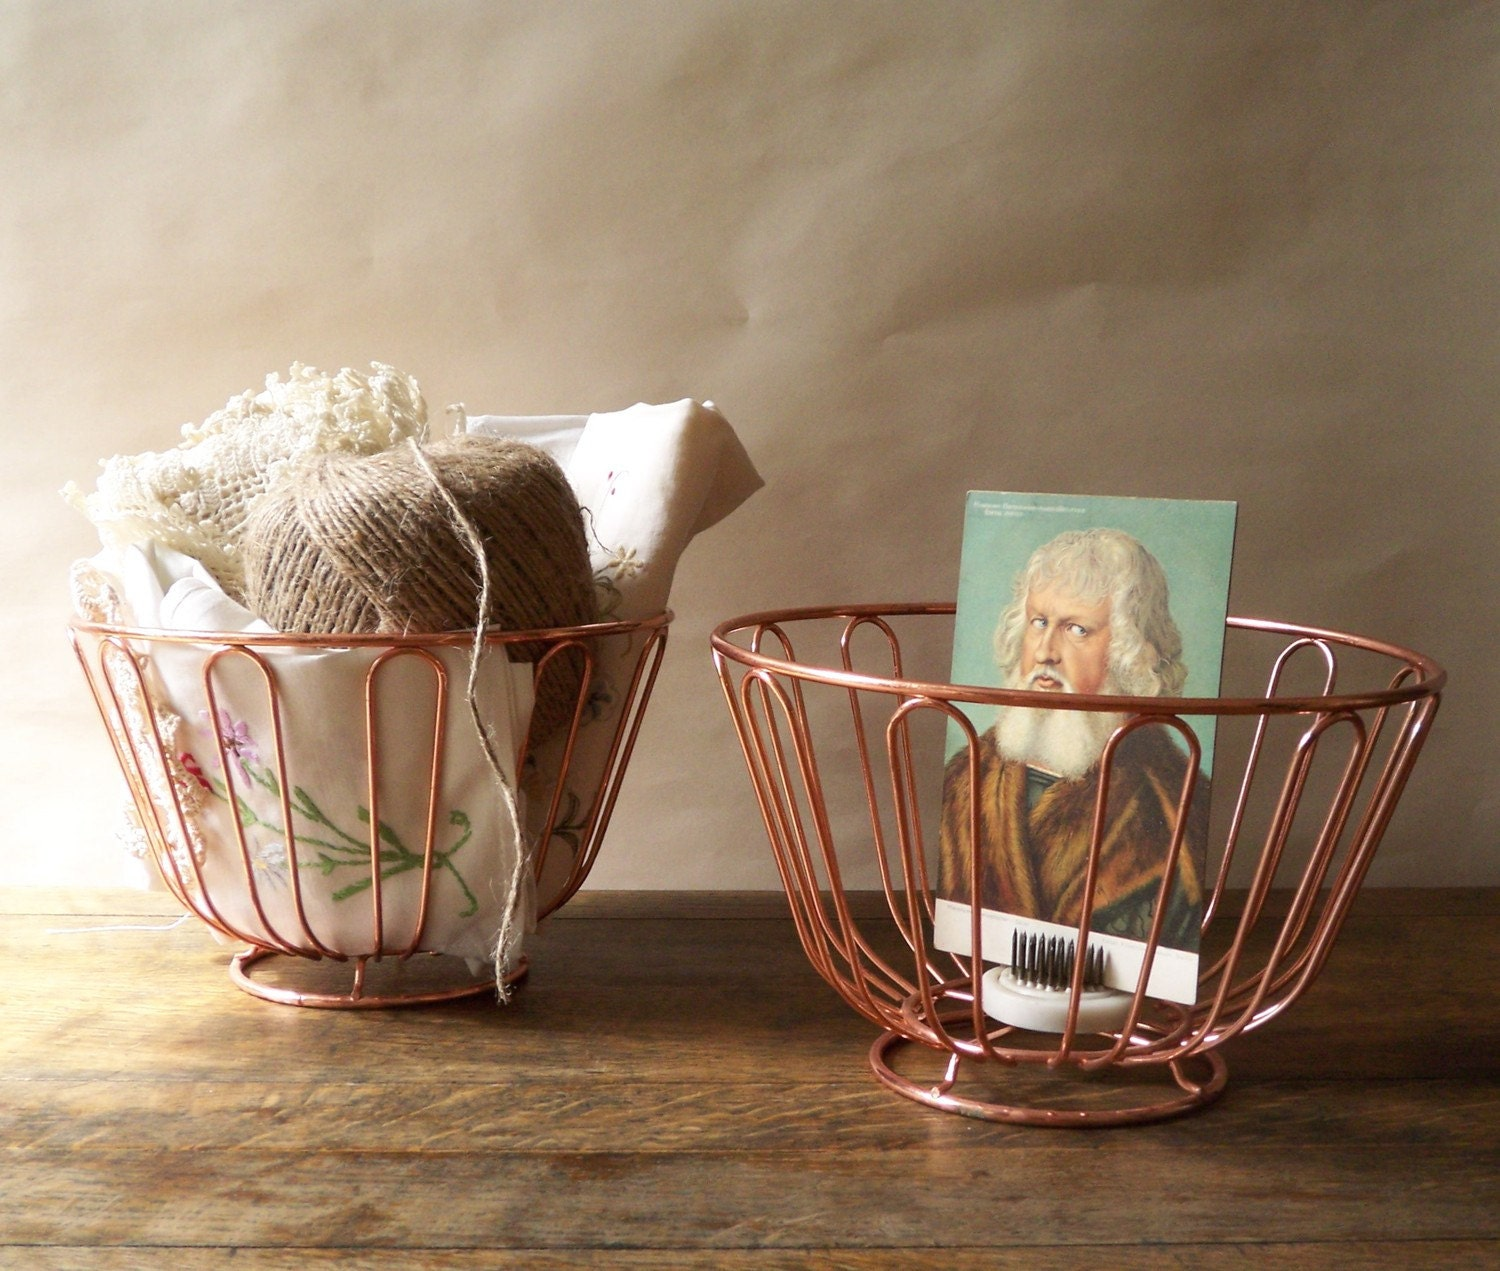 pair of copper wire baskets